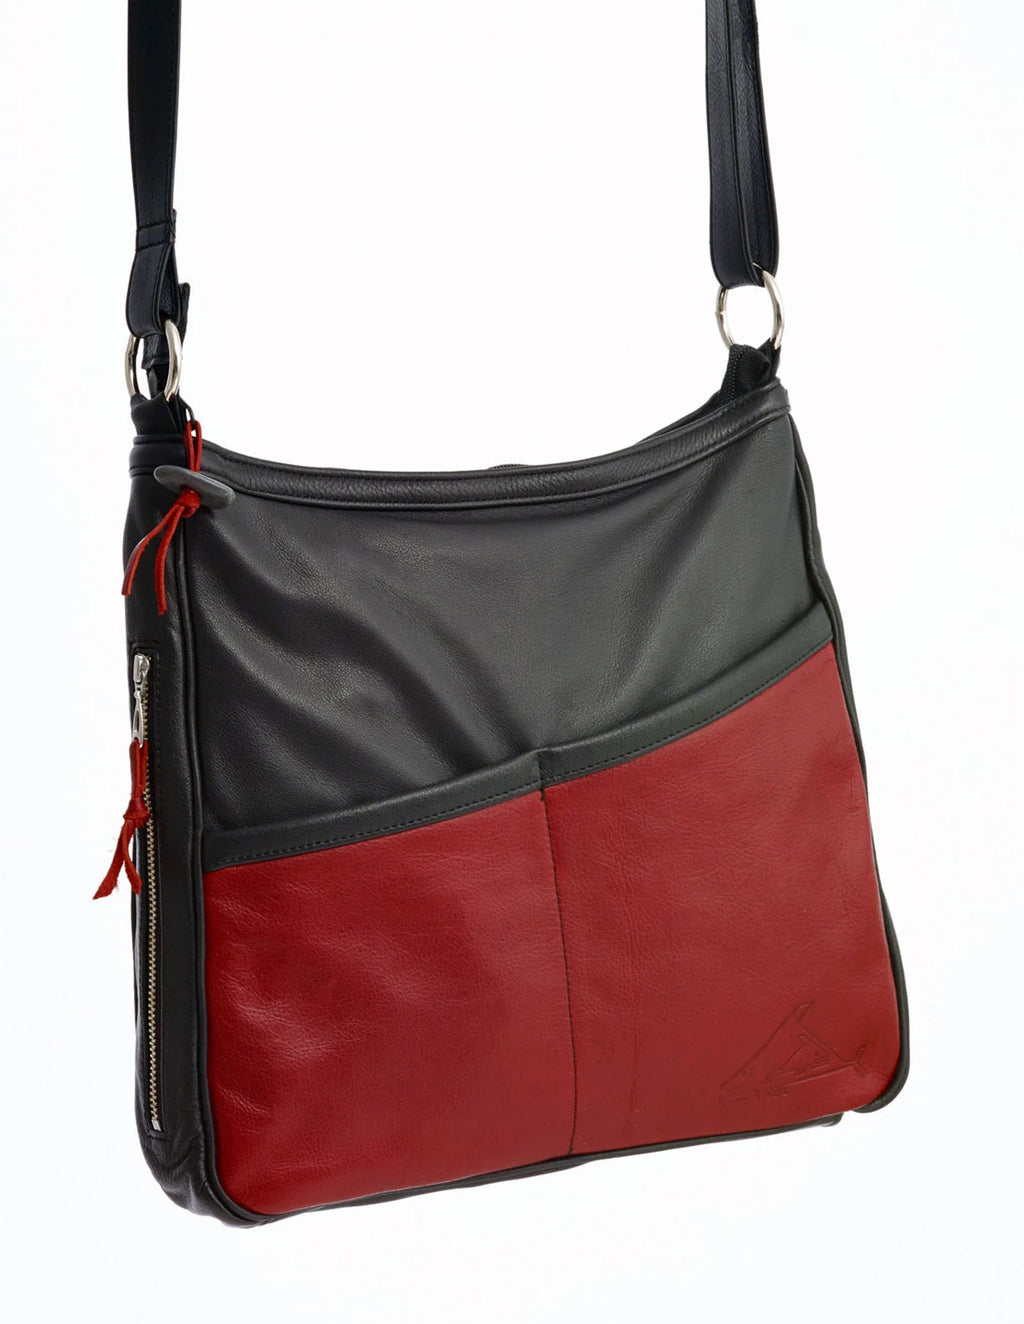 Classic Cross-Body Bag - Indian Summer's designer leather purses